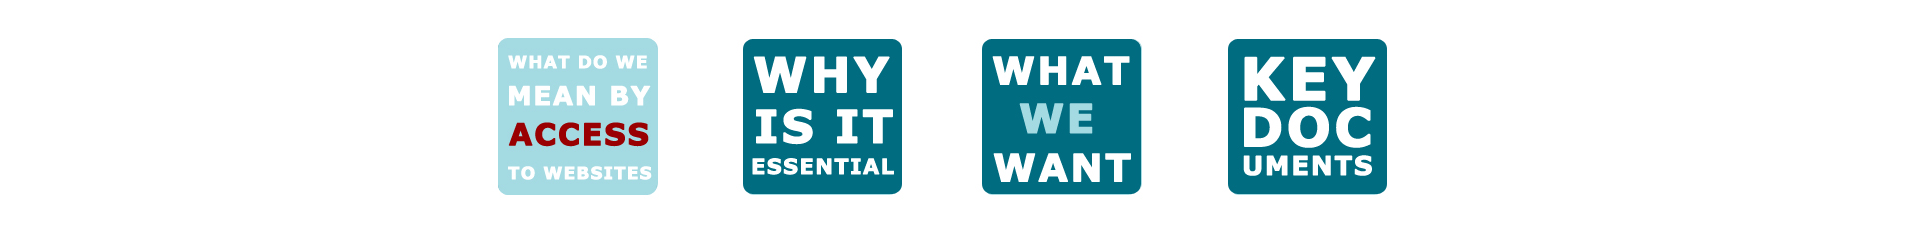 What do we mean by Access to Websites - Why is it essential - What we want - Key Documents